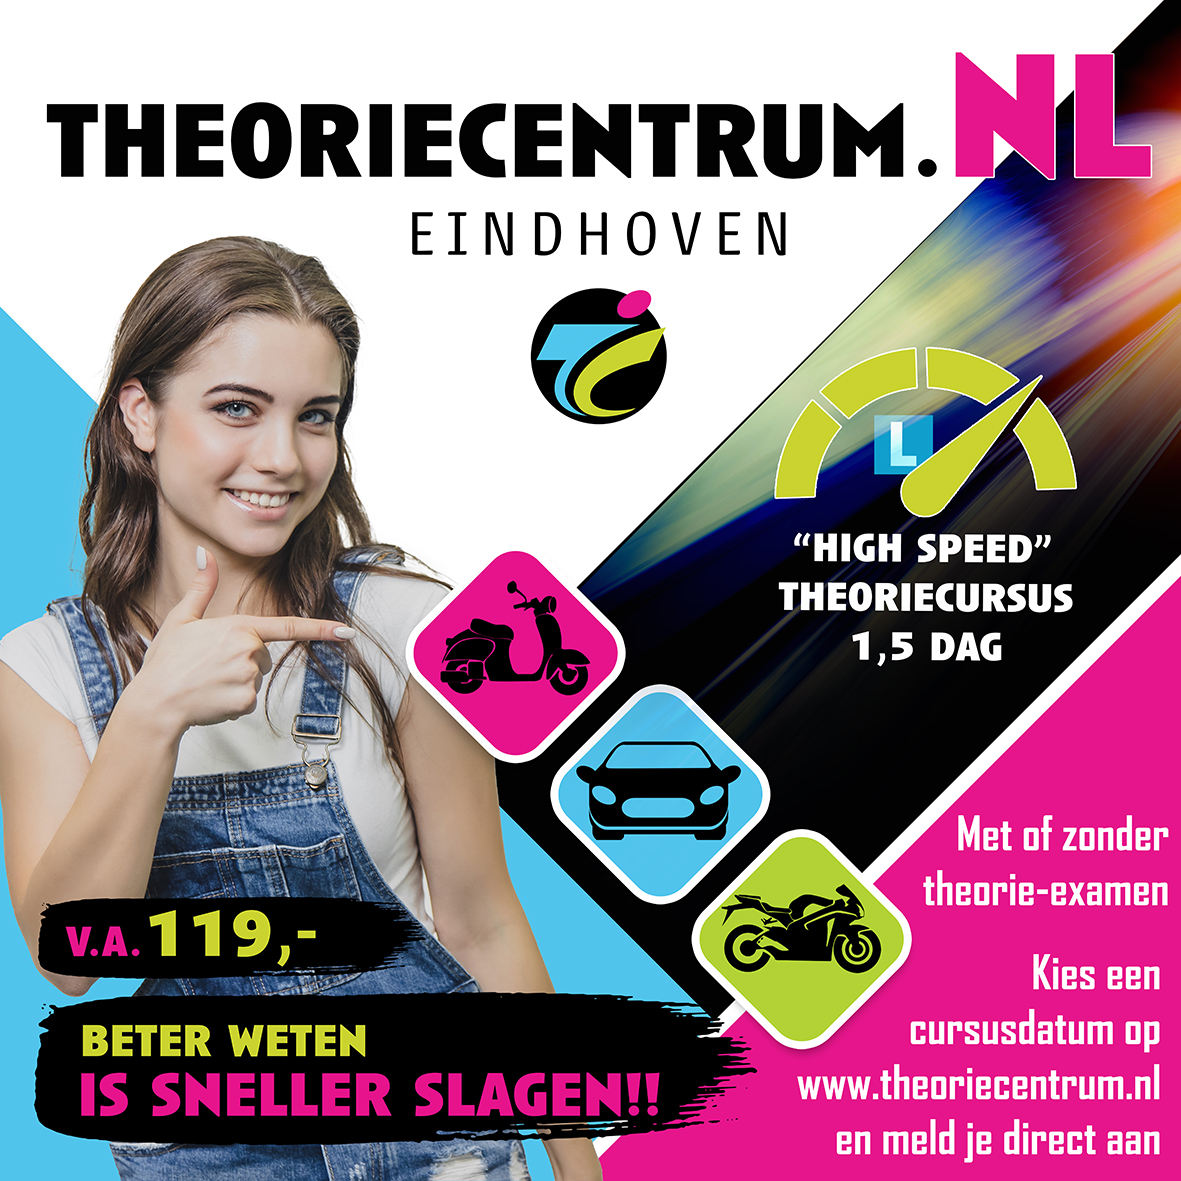 Fb Insta Advertentie 1 25 Juli 2020